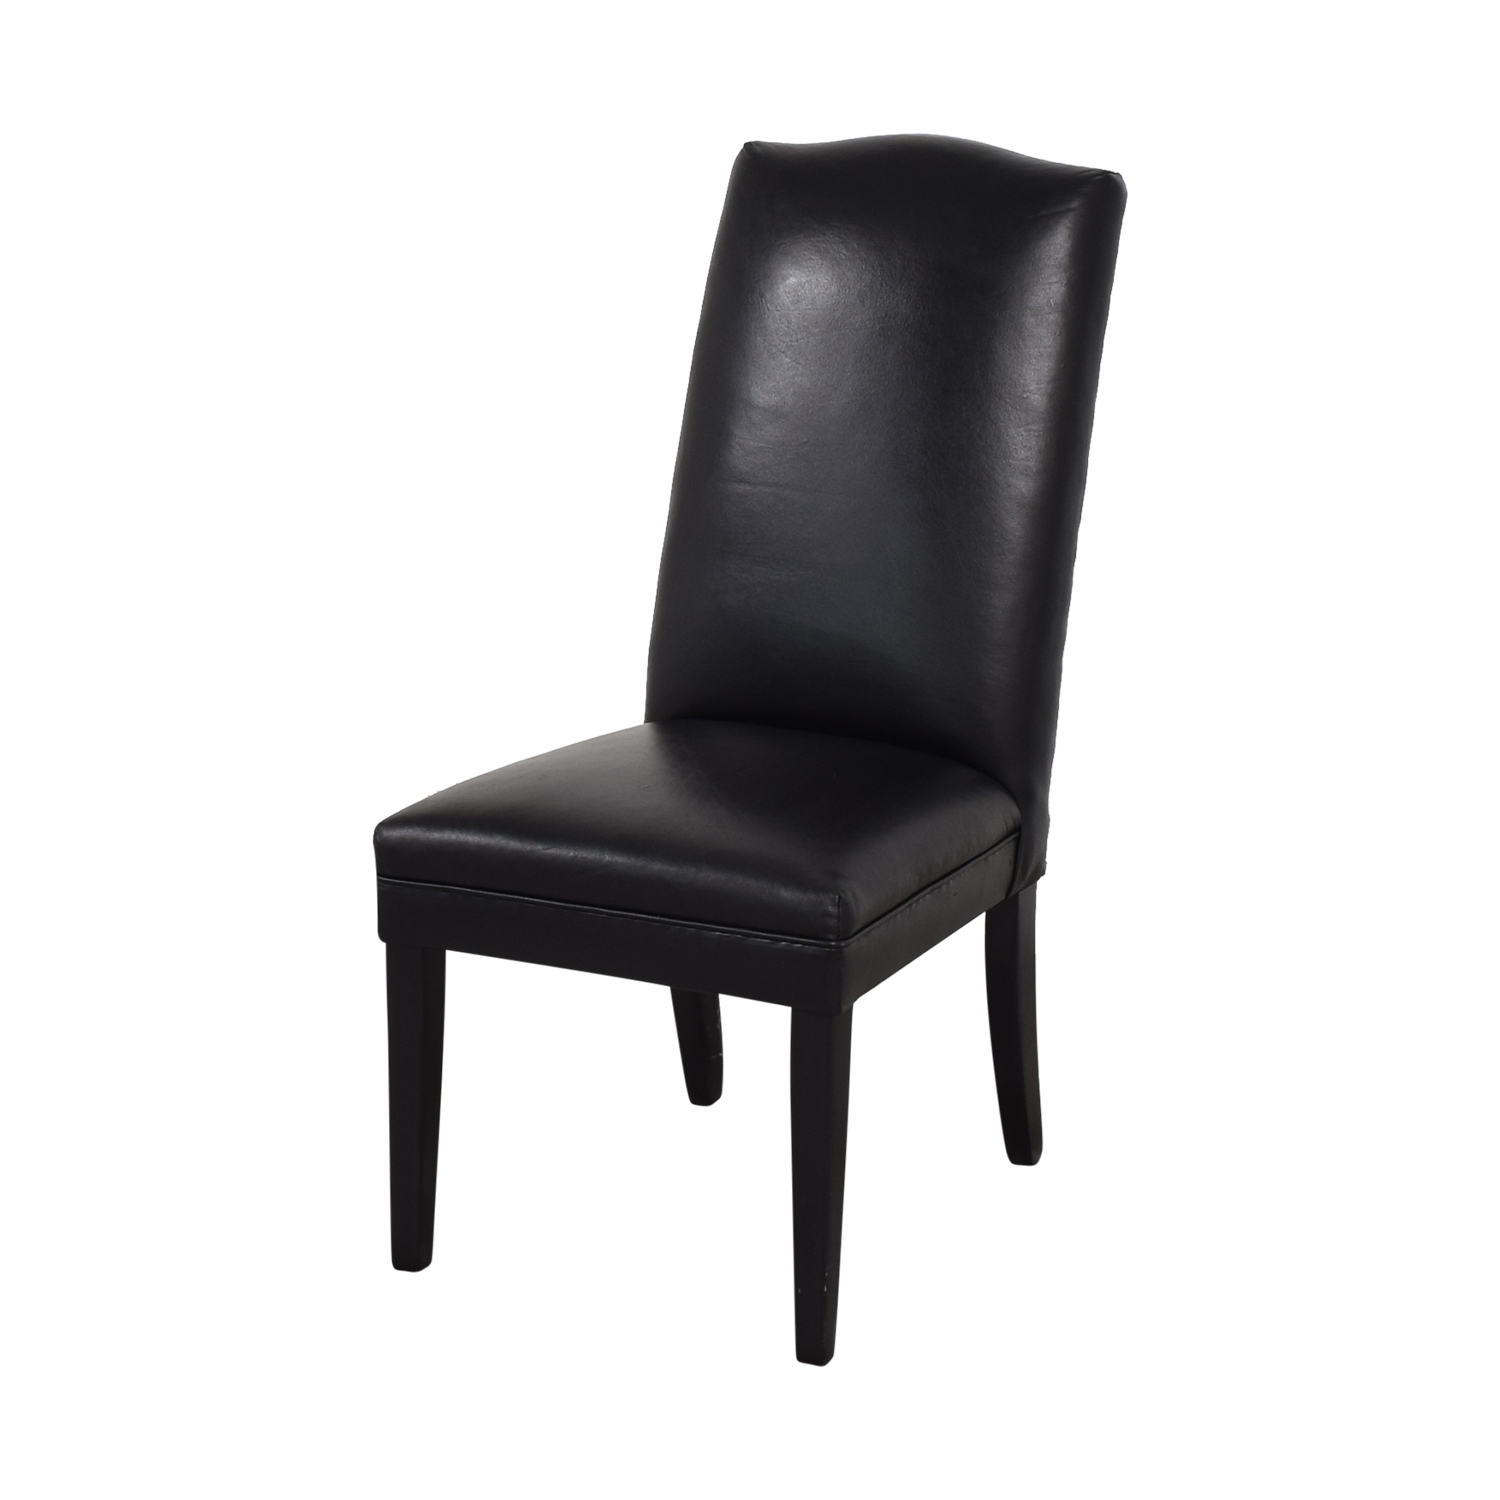 Classic Style High Back Dining Chairs nj